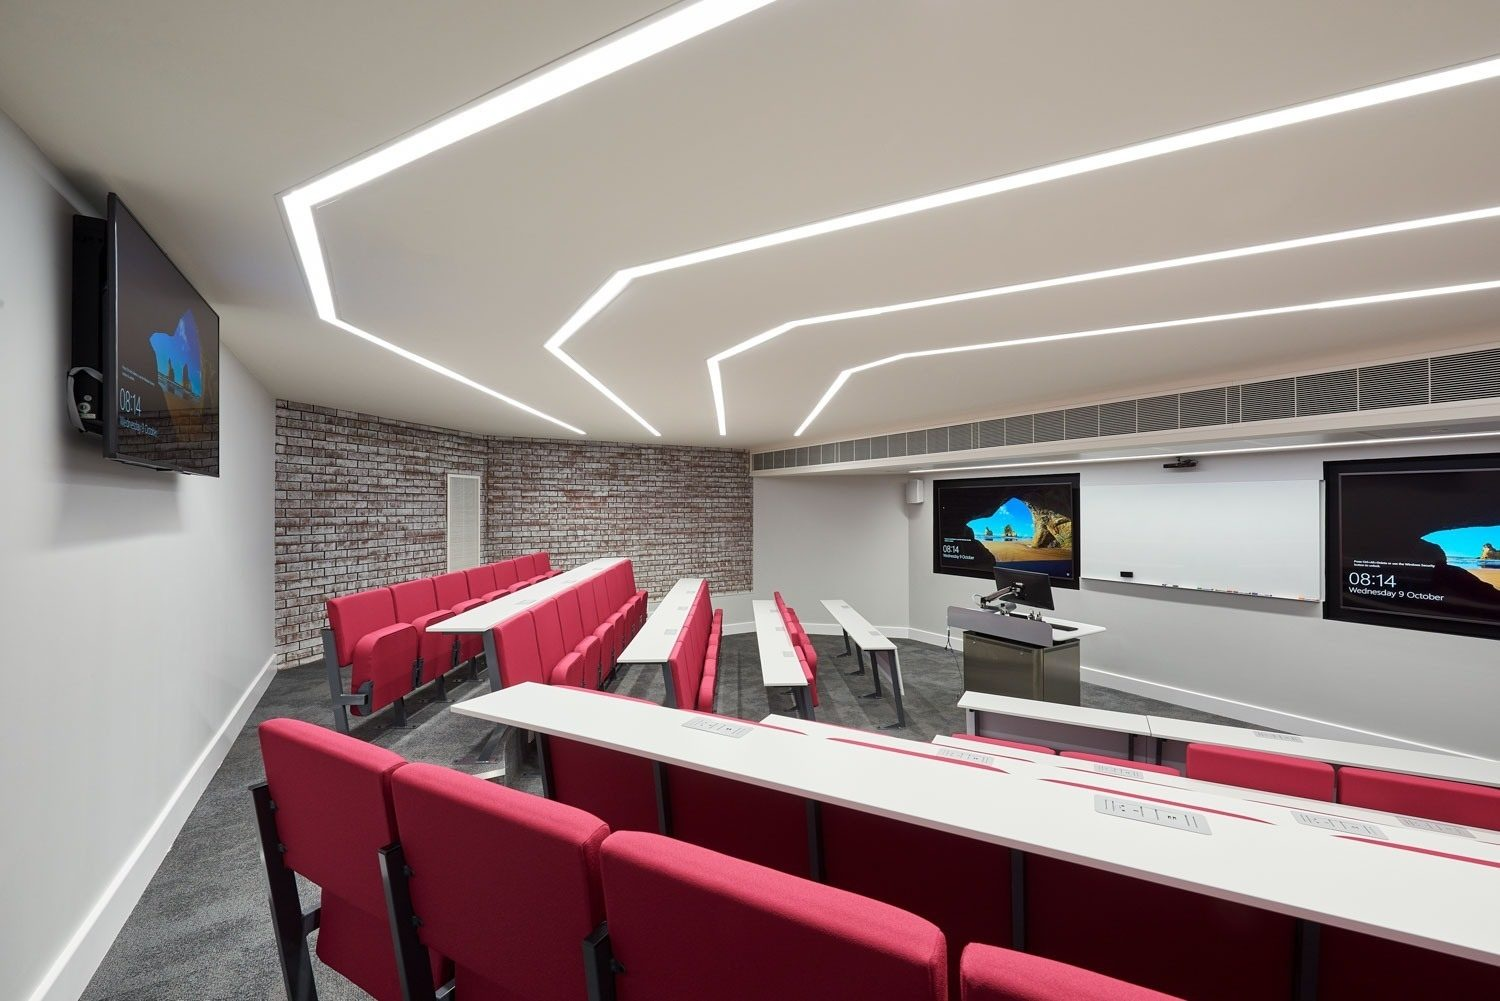 Warwick University large screens in lecture theatre